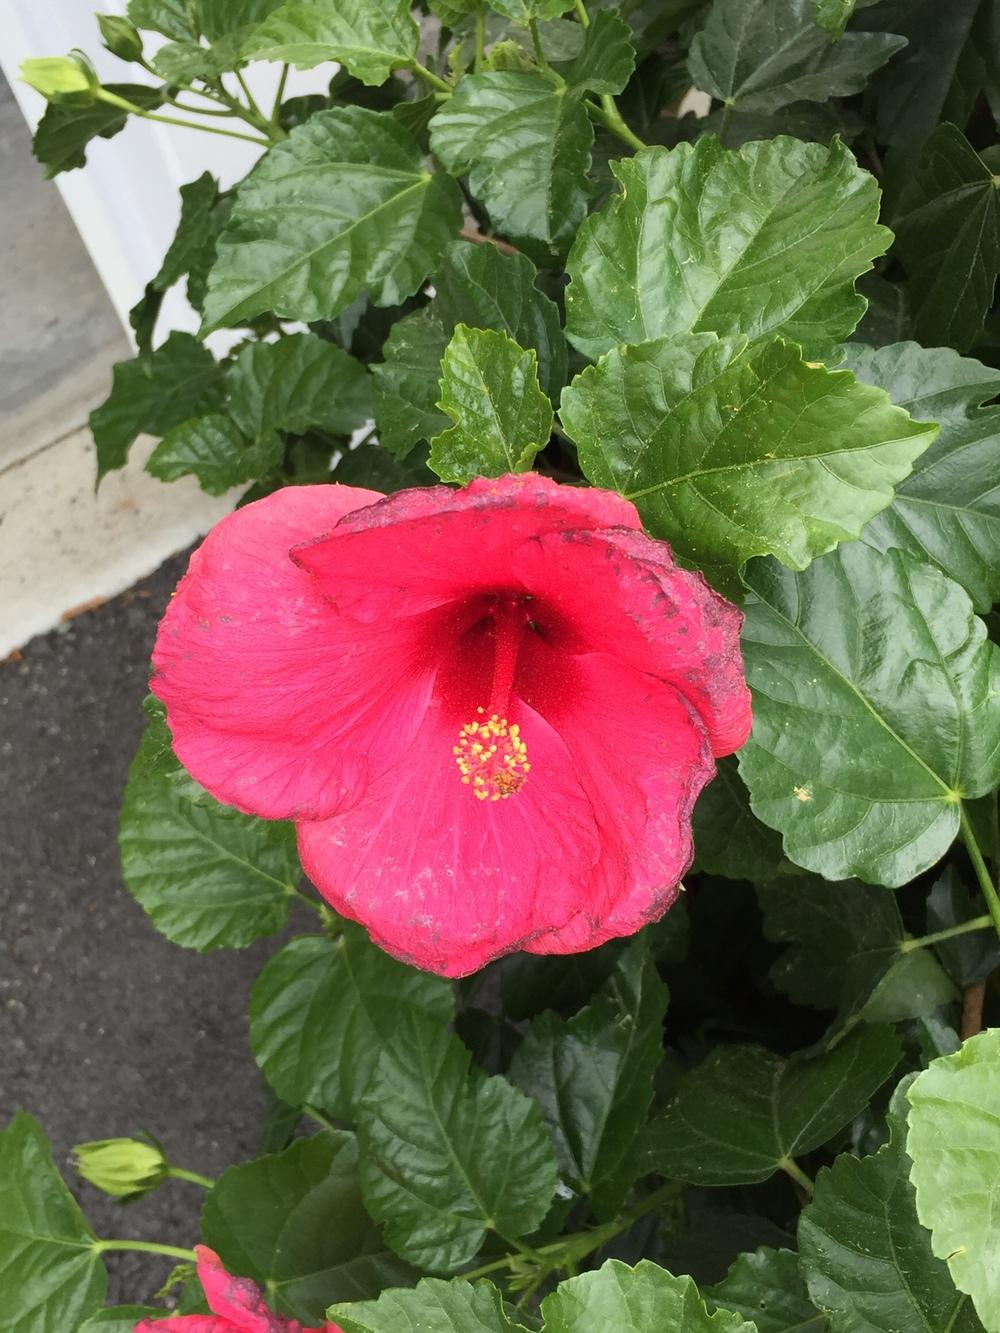 Ask a question forum hibiscus flower edges are turning black thumb of 2016 06 10visitore110f5 izmirmasajfo